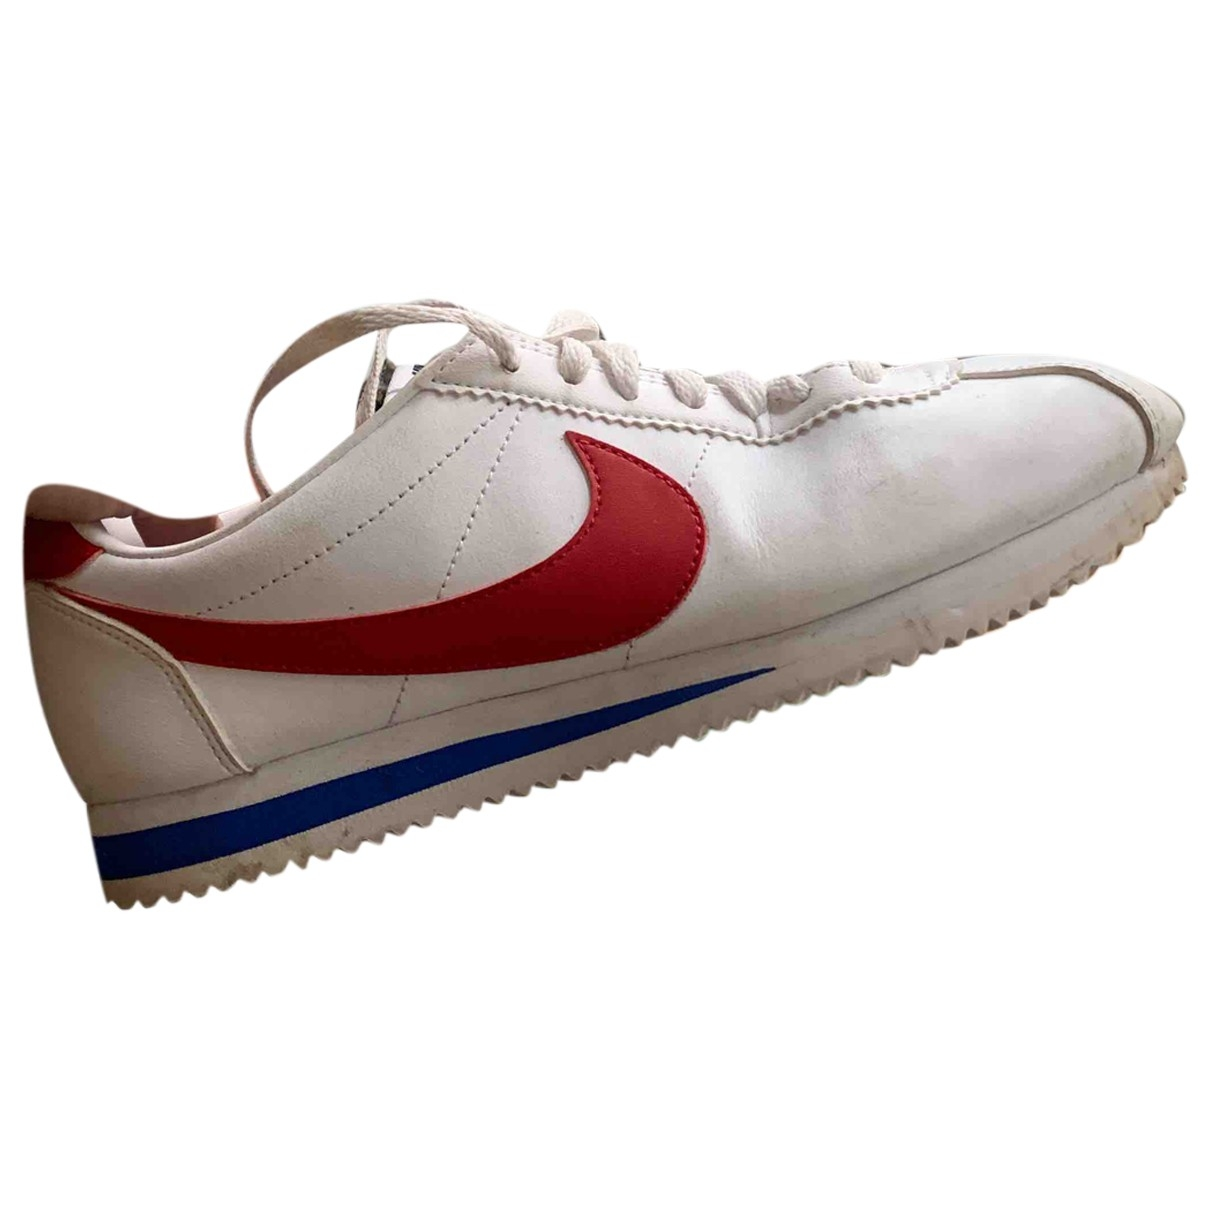 Nike Cortez White Leather Trainers for Women 41 EU